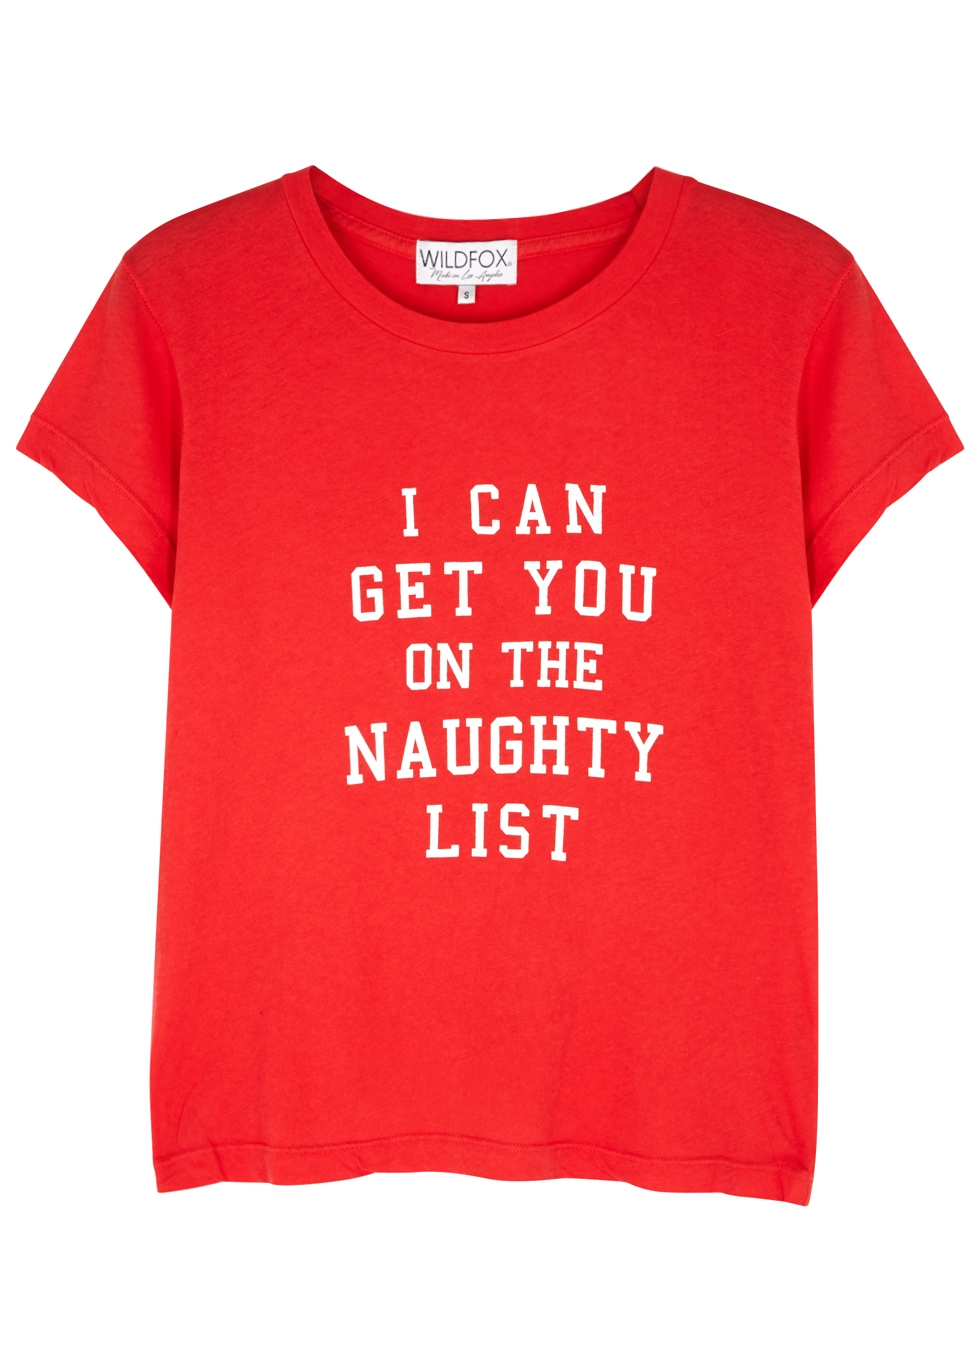 WILDFOX Naughty List Printed Cotton-Jersey T-Shirt in Red